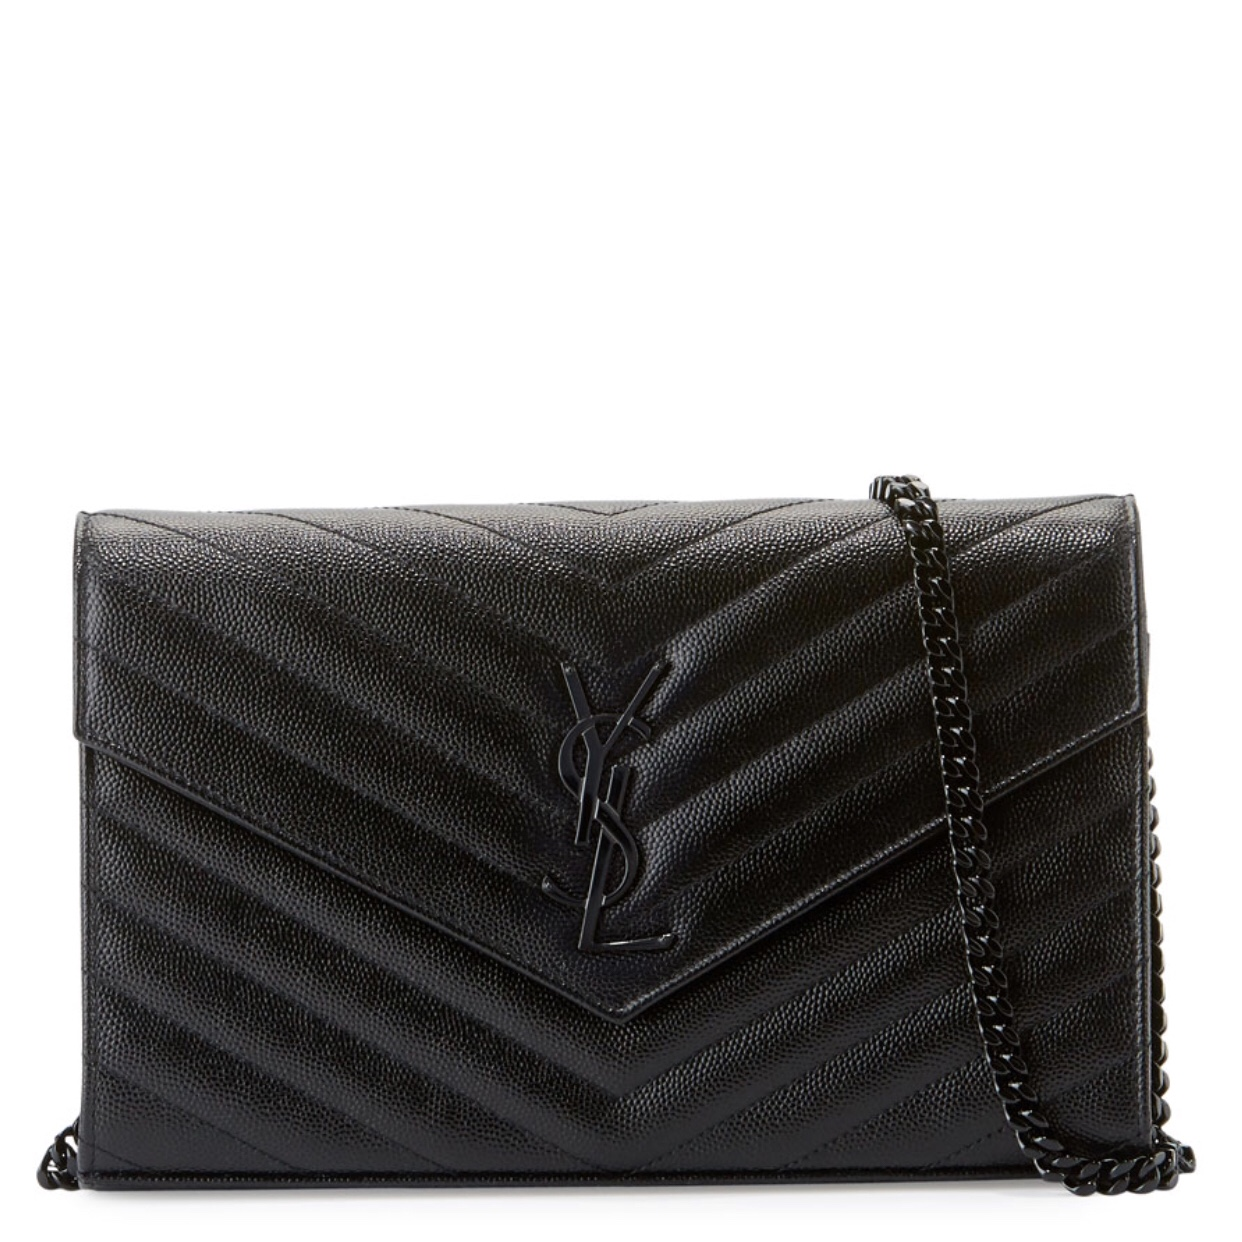 7c64965b8a5f YSL Envelope Chain Clutch - Black - Adorn Collection